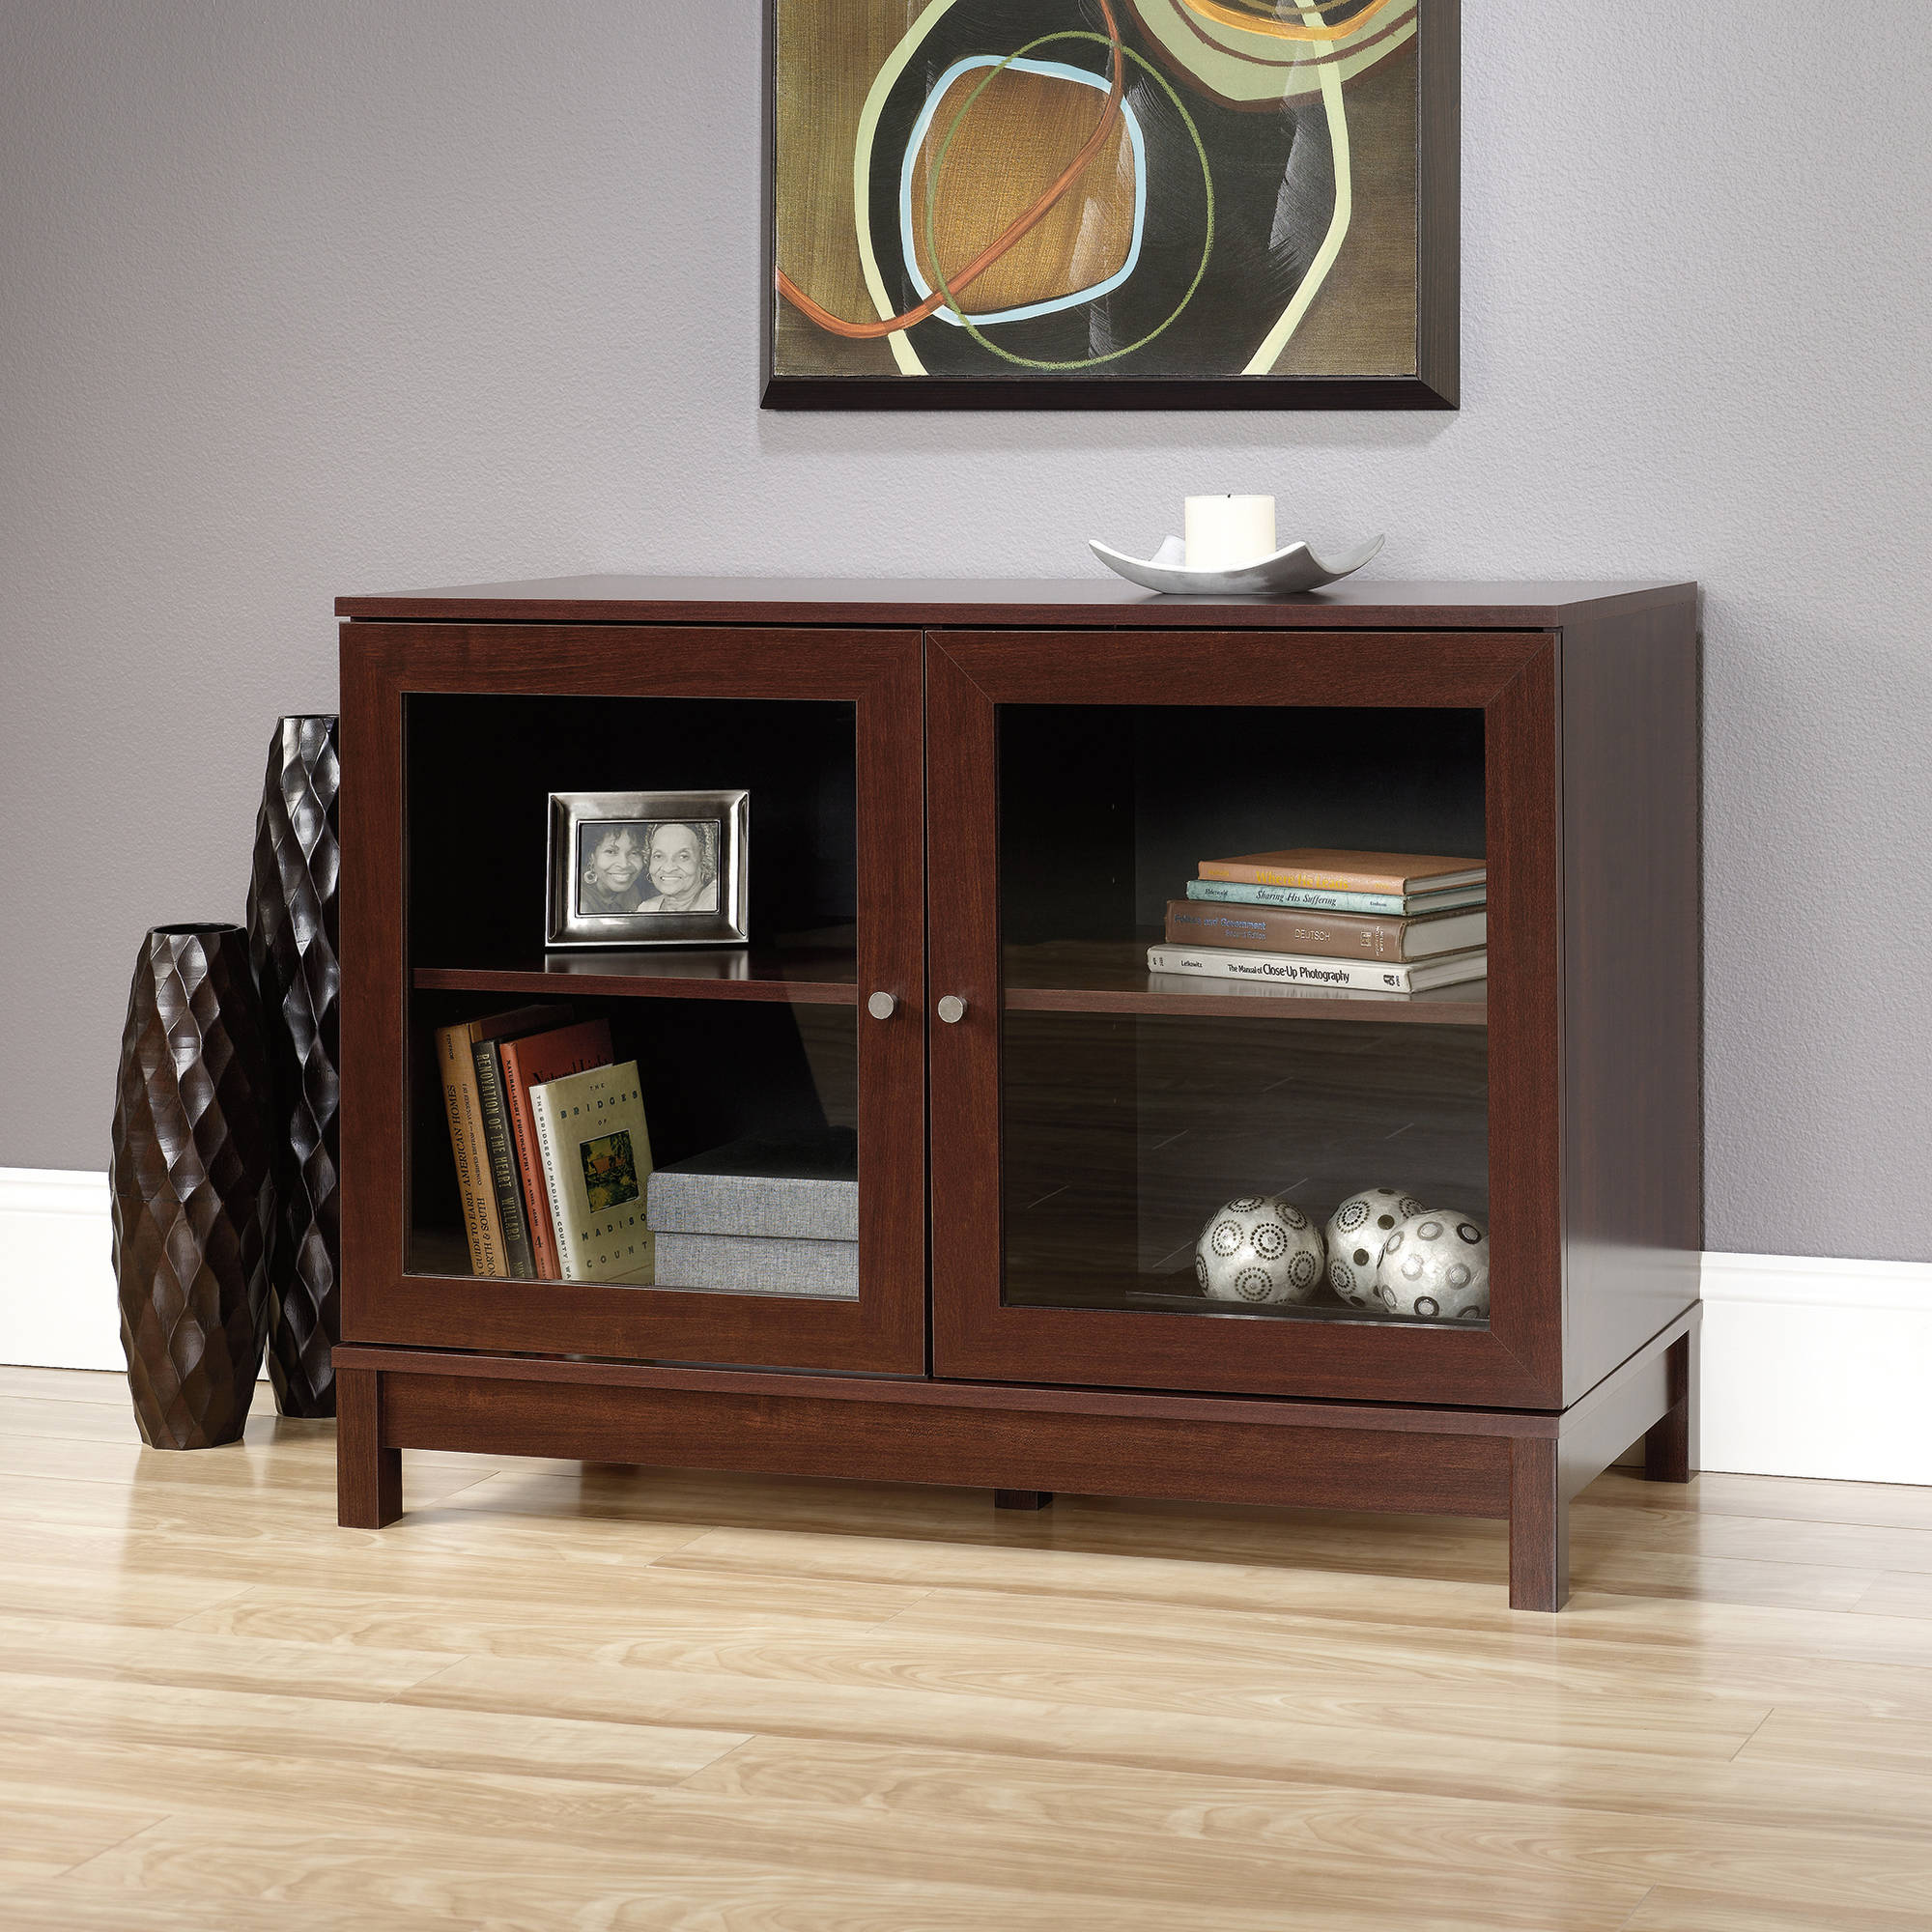 Sauder Kendall Square Furniture Collection